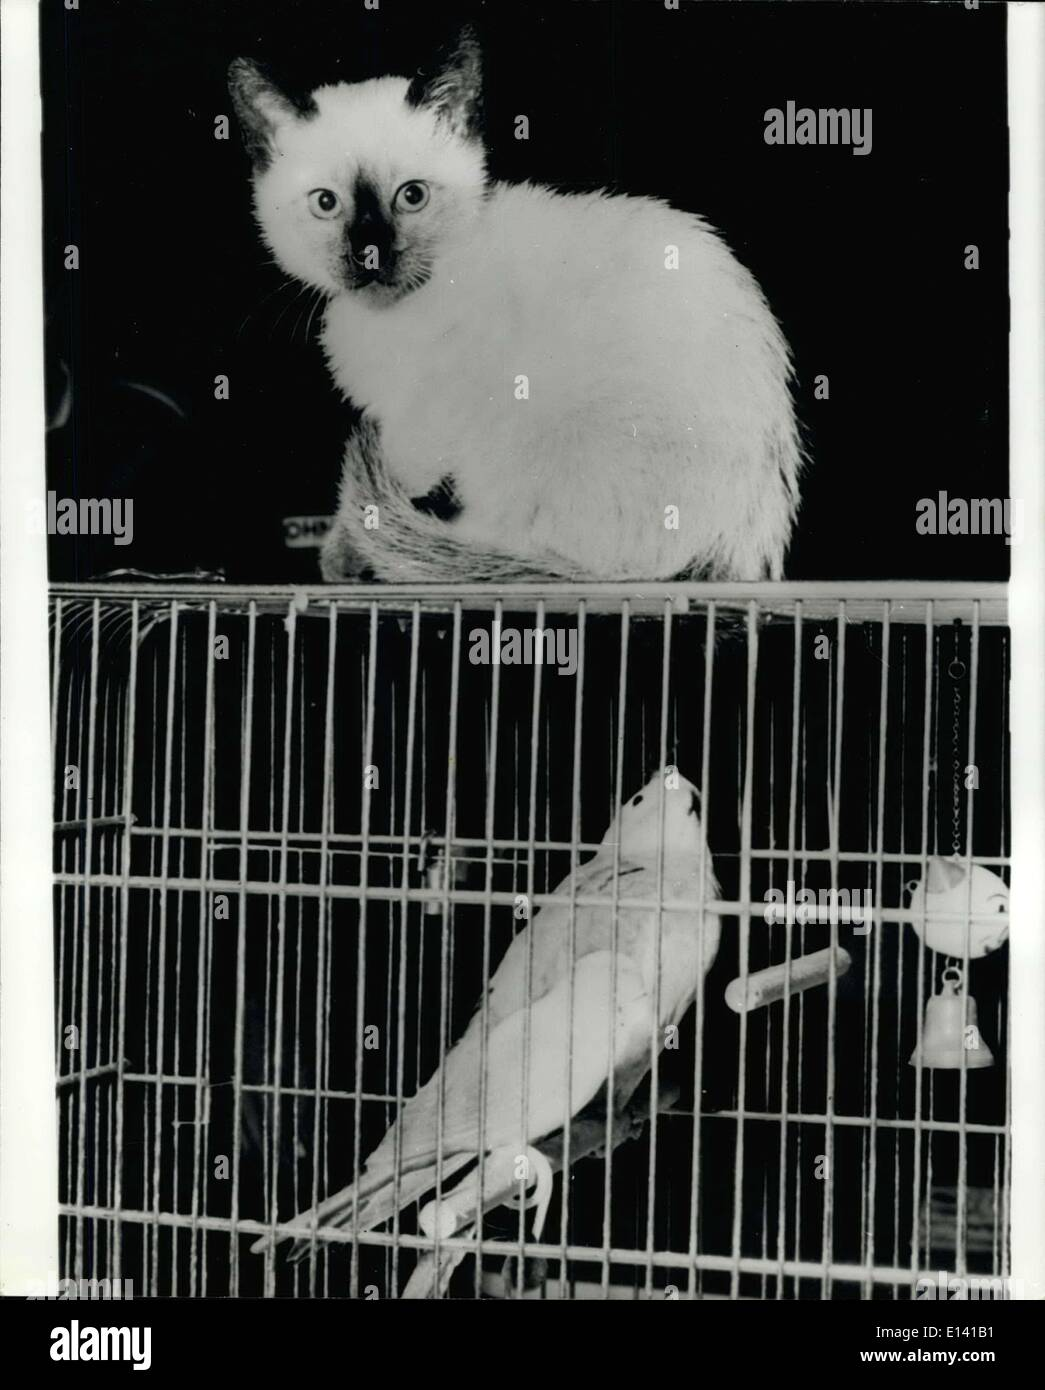 Mar. 31, 2012 - He Does'nt Get The Bord: Squarky, the Parrot looks up apprehensively at Scruffty the cat, who sits perched on top of his cage. - Stock Image